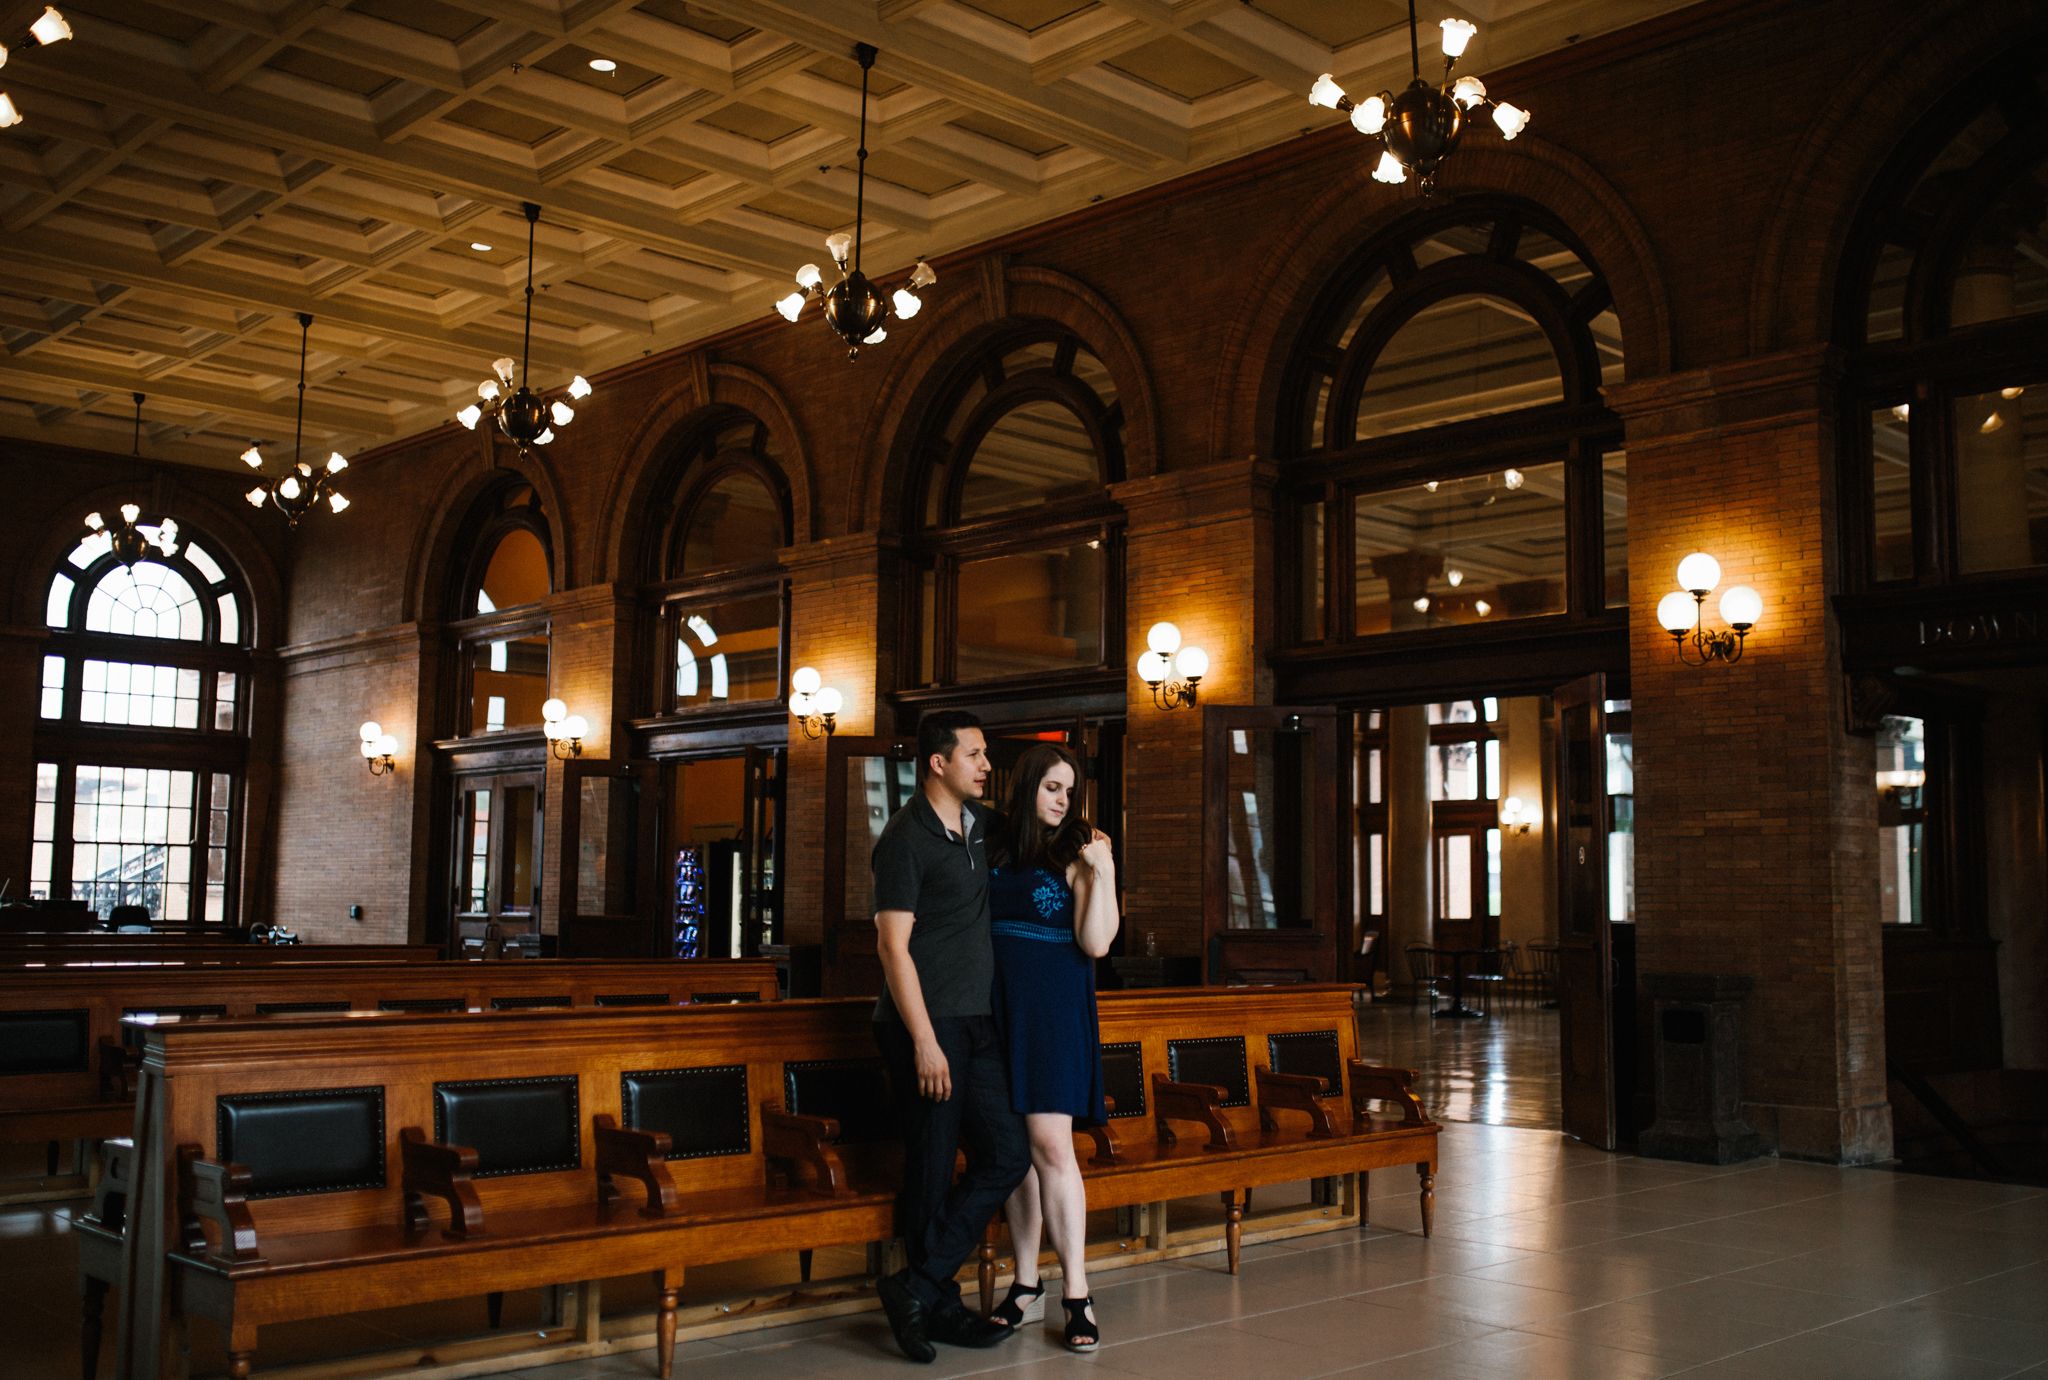 rachel_alex_richmond_engagement_session_mainstreetstation_rebeccaburtphotography-8.jpg